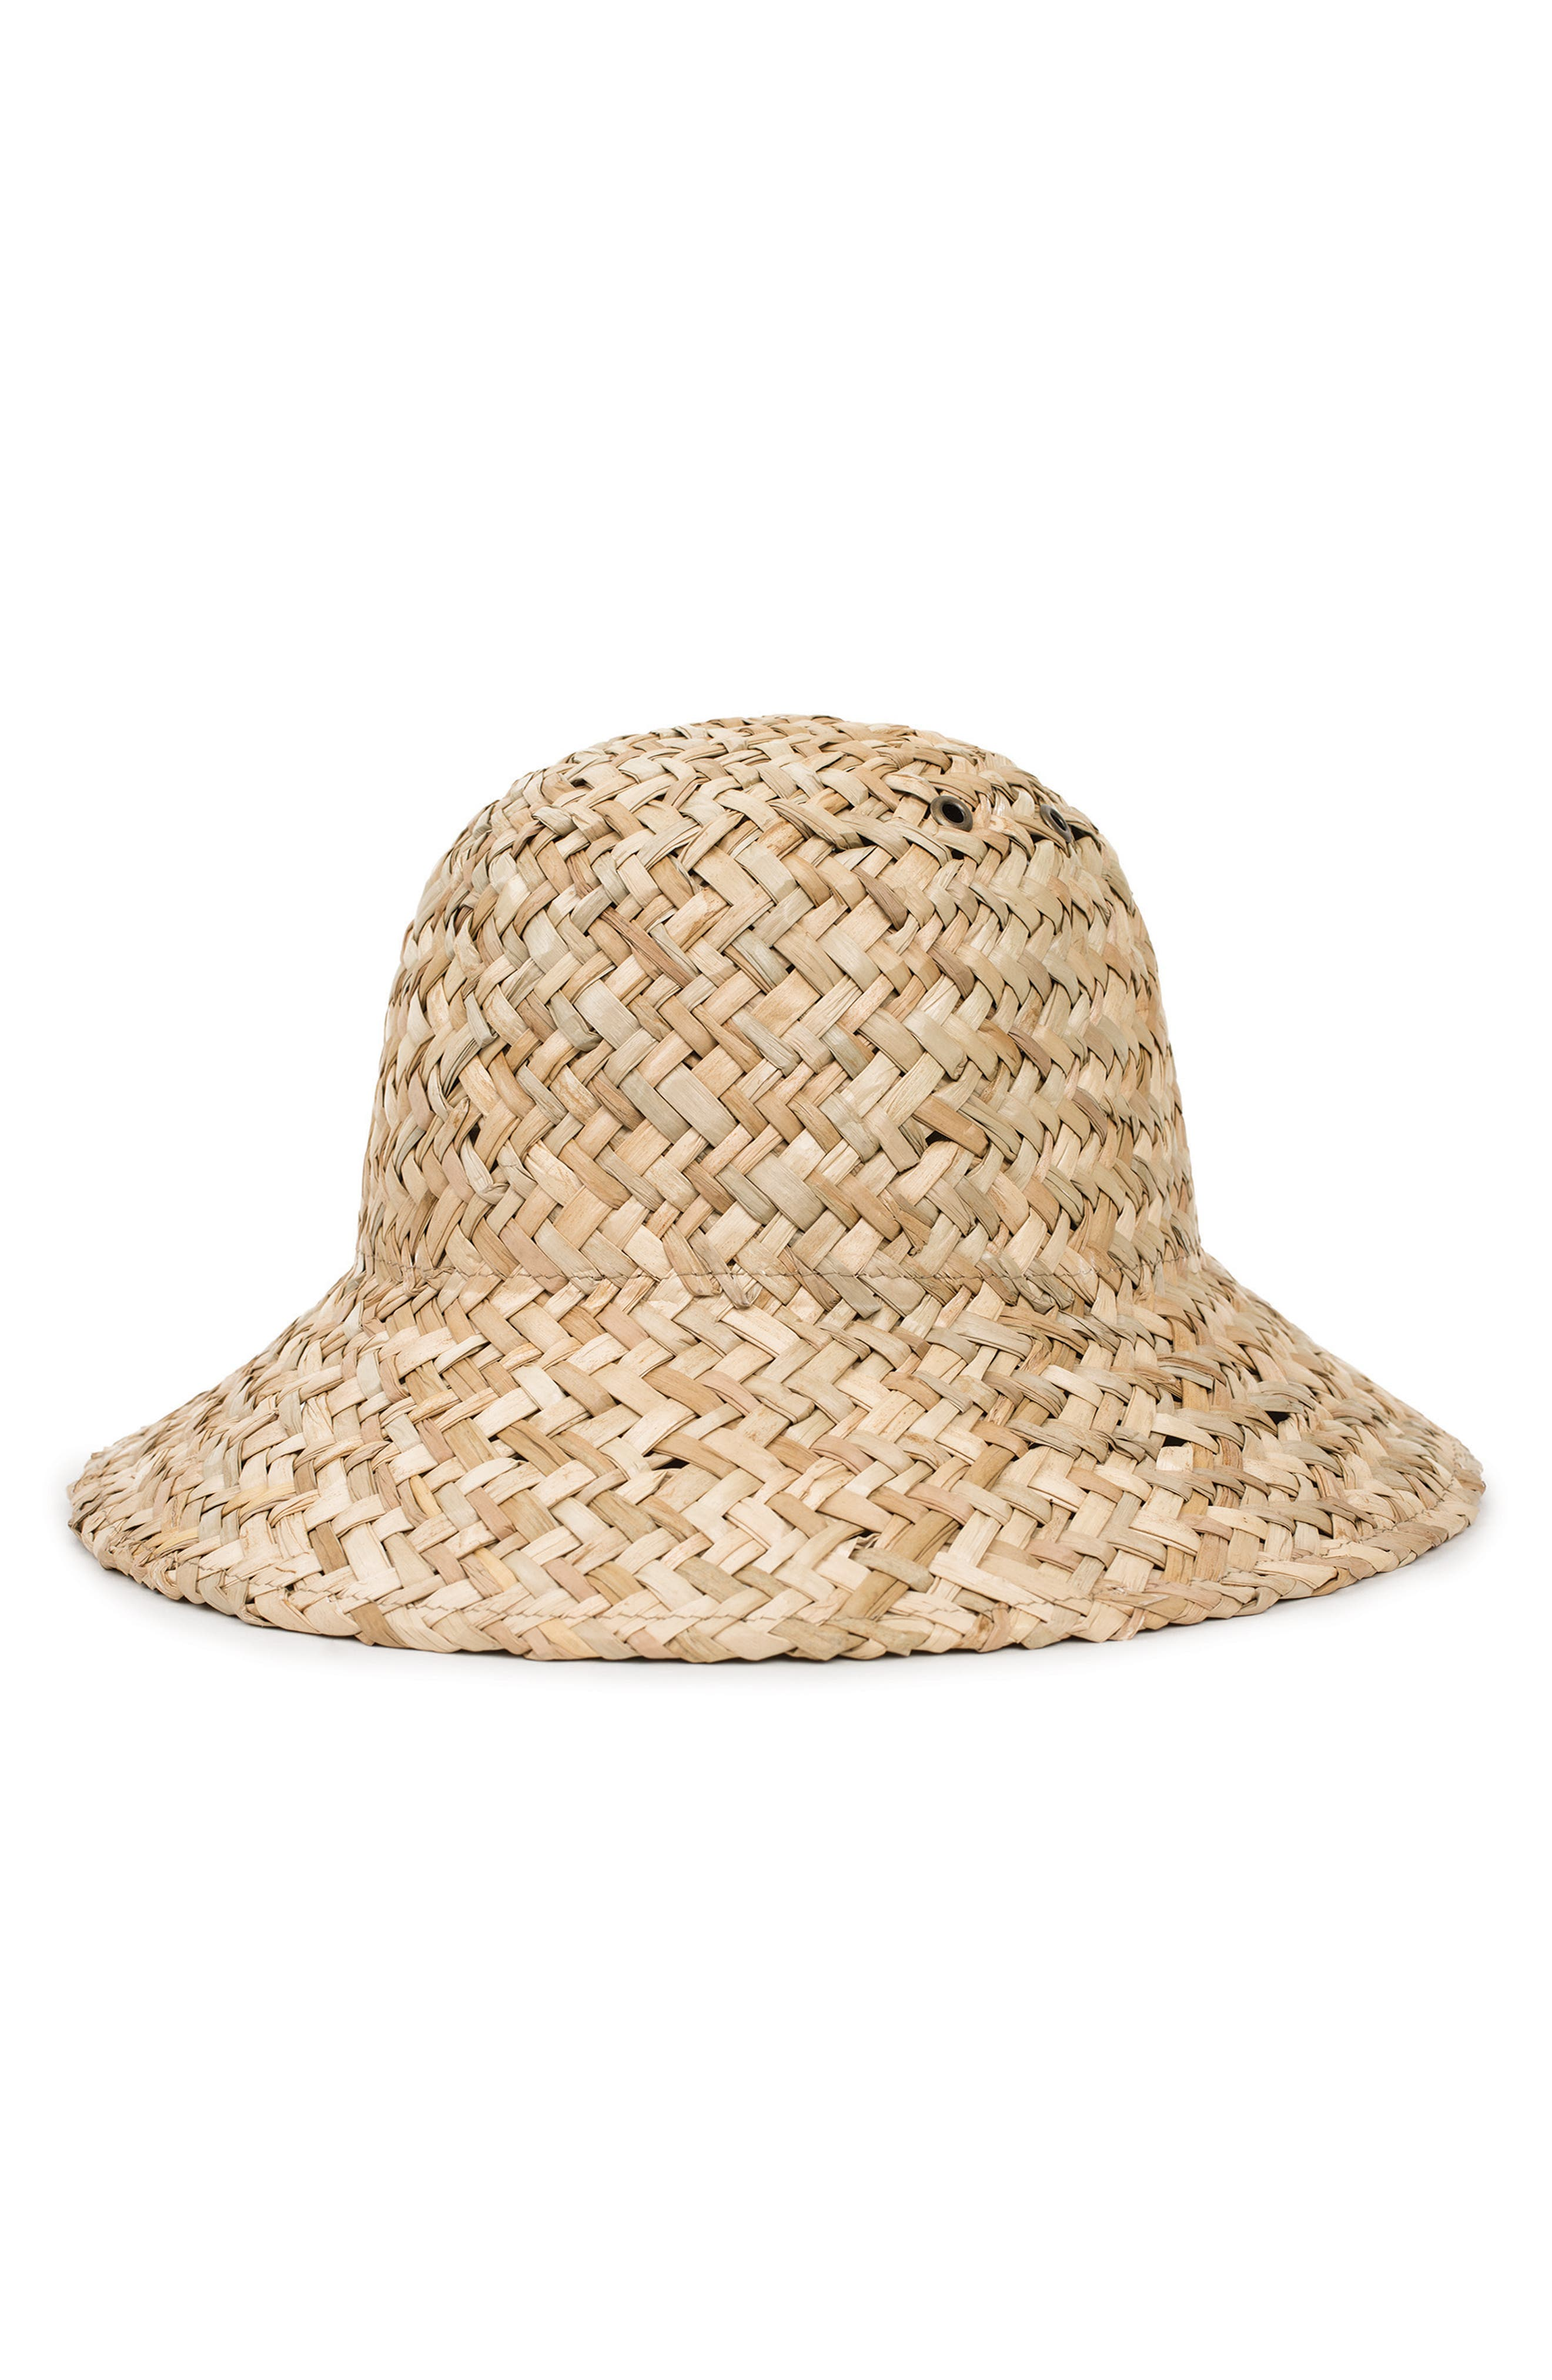 Kennedy Straw Hat,                             Main thumbnail 1, color,                             DARK TAN